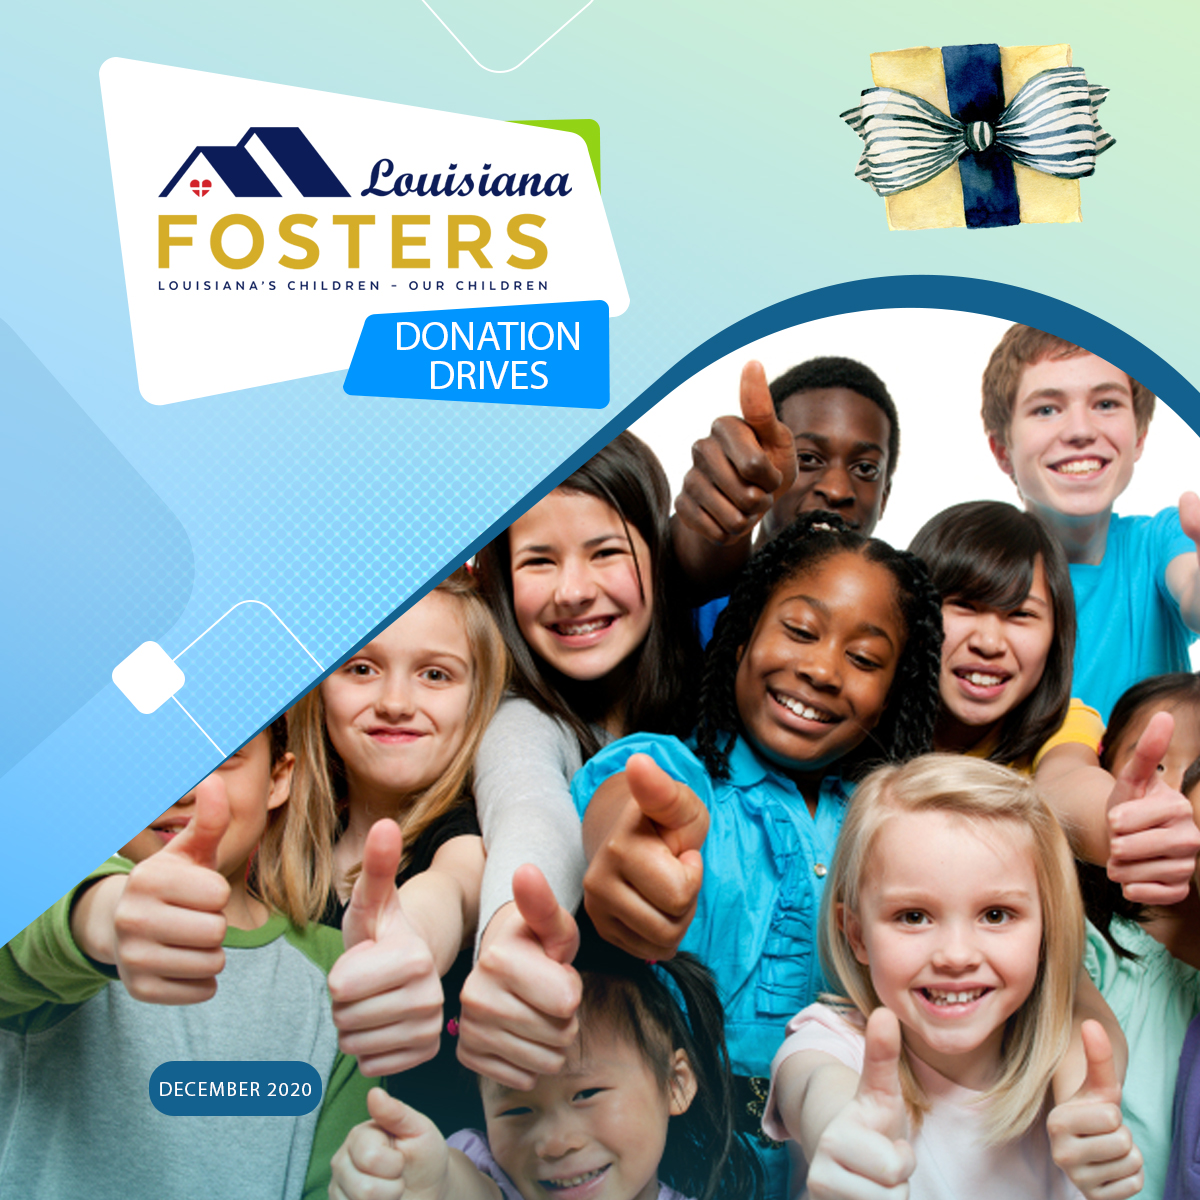 Louisiana Fosters – Partner Organizations for the Holiday Season